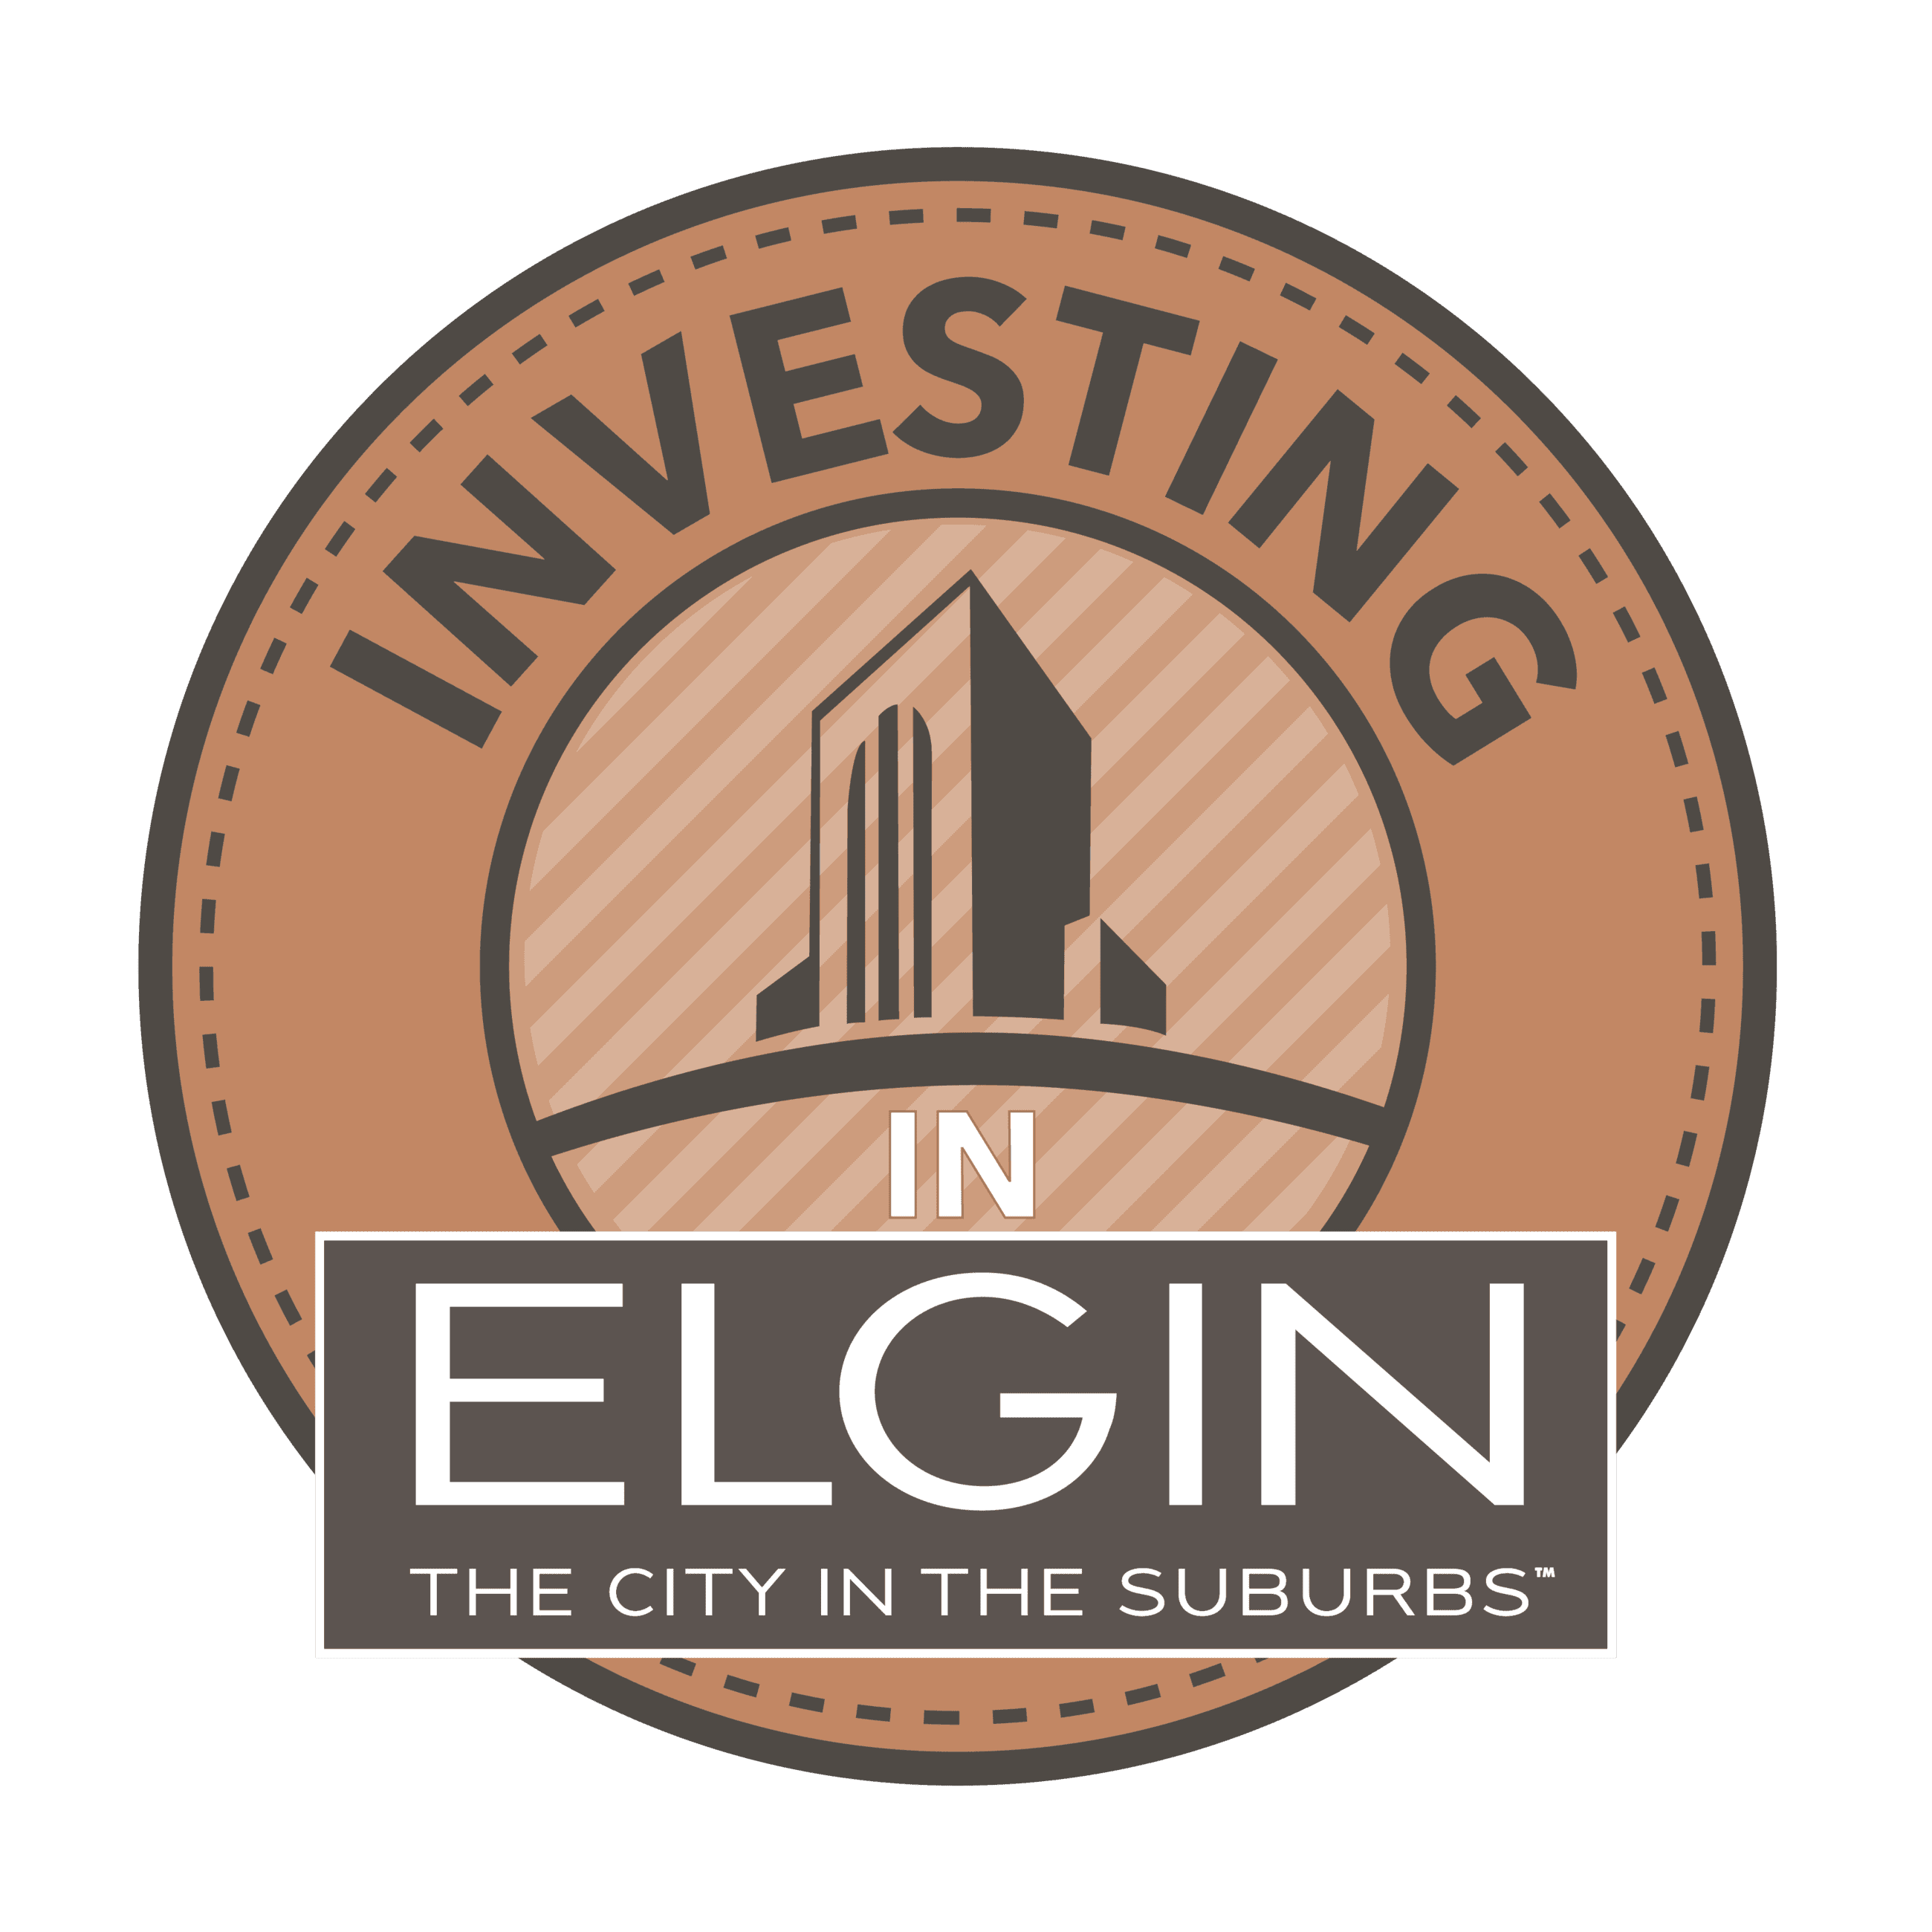 Investing in Elgin logo for construction campaign